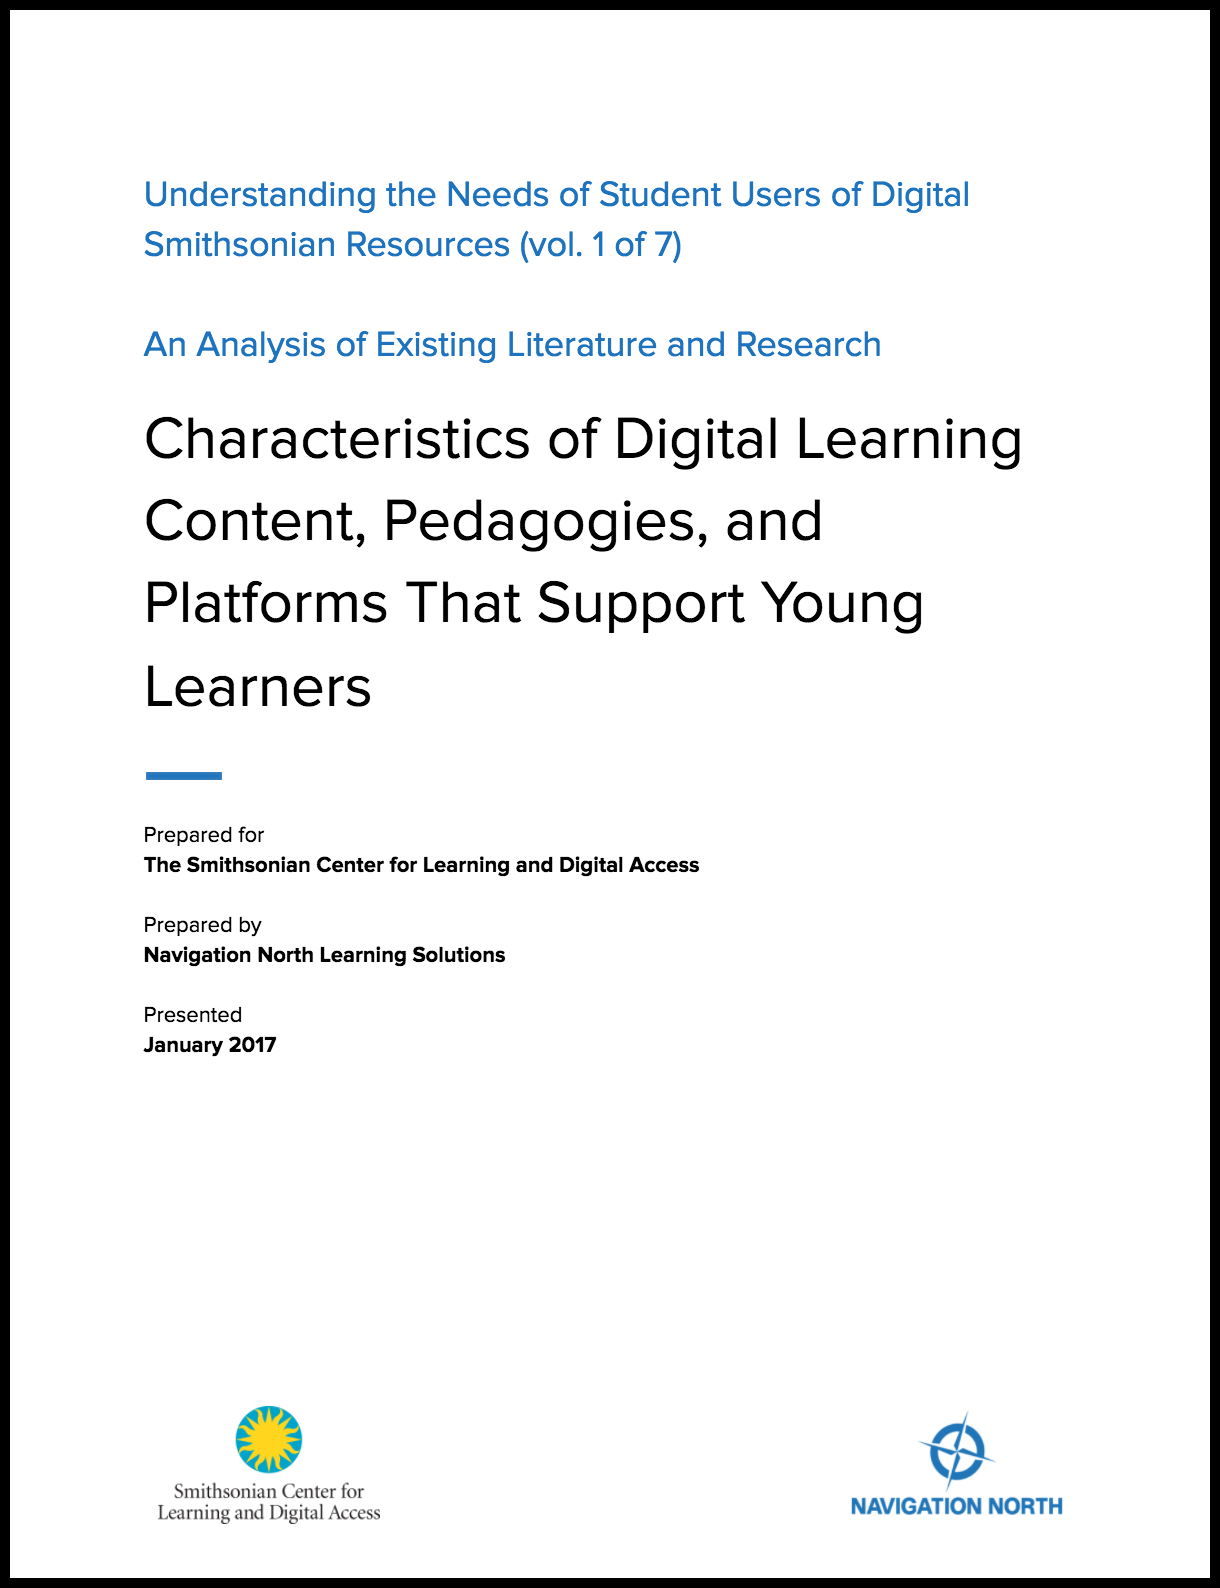 Characteristics of Digital Learning Content, Pedagogies, and Platforms That Support Young Learners